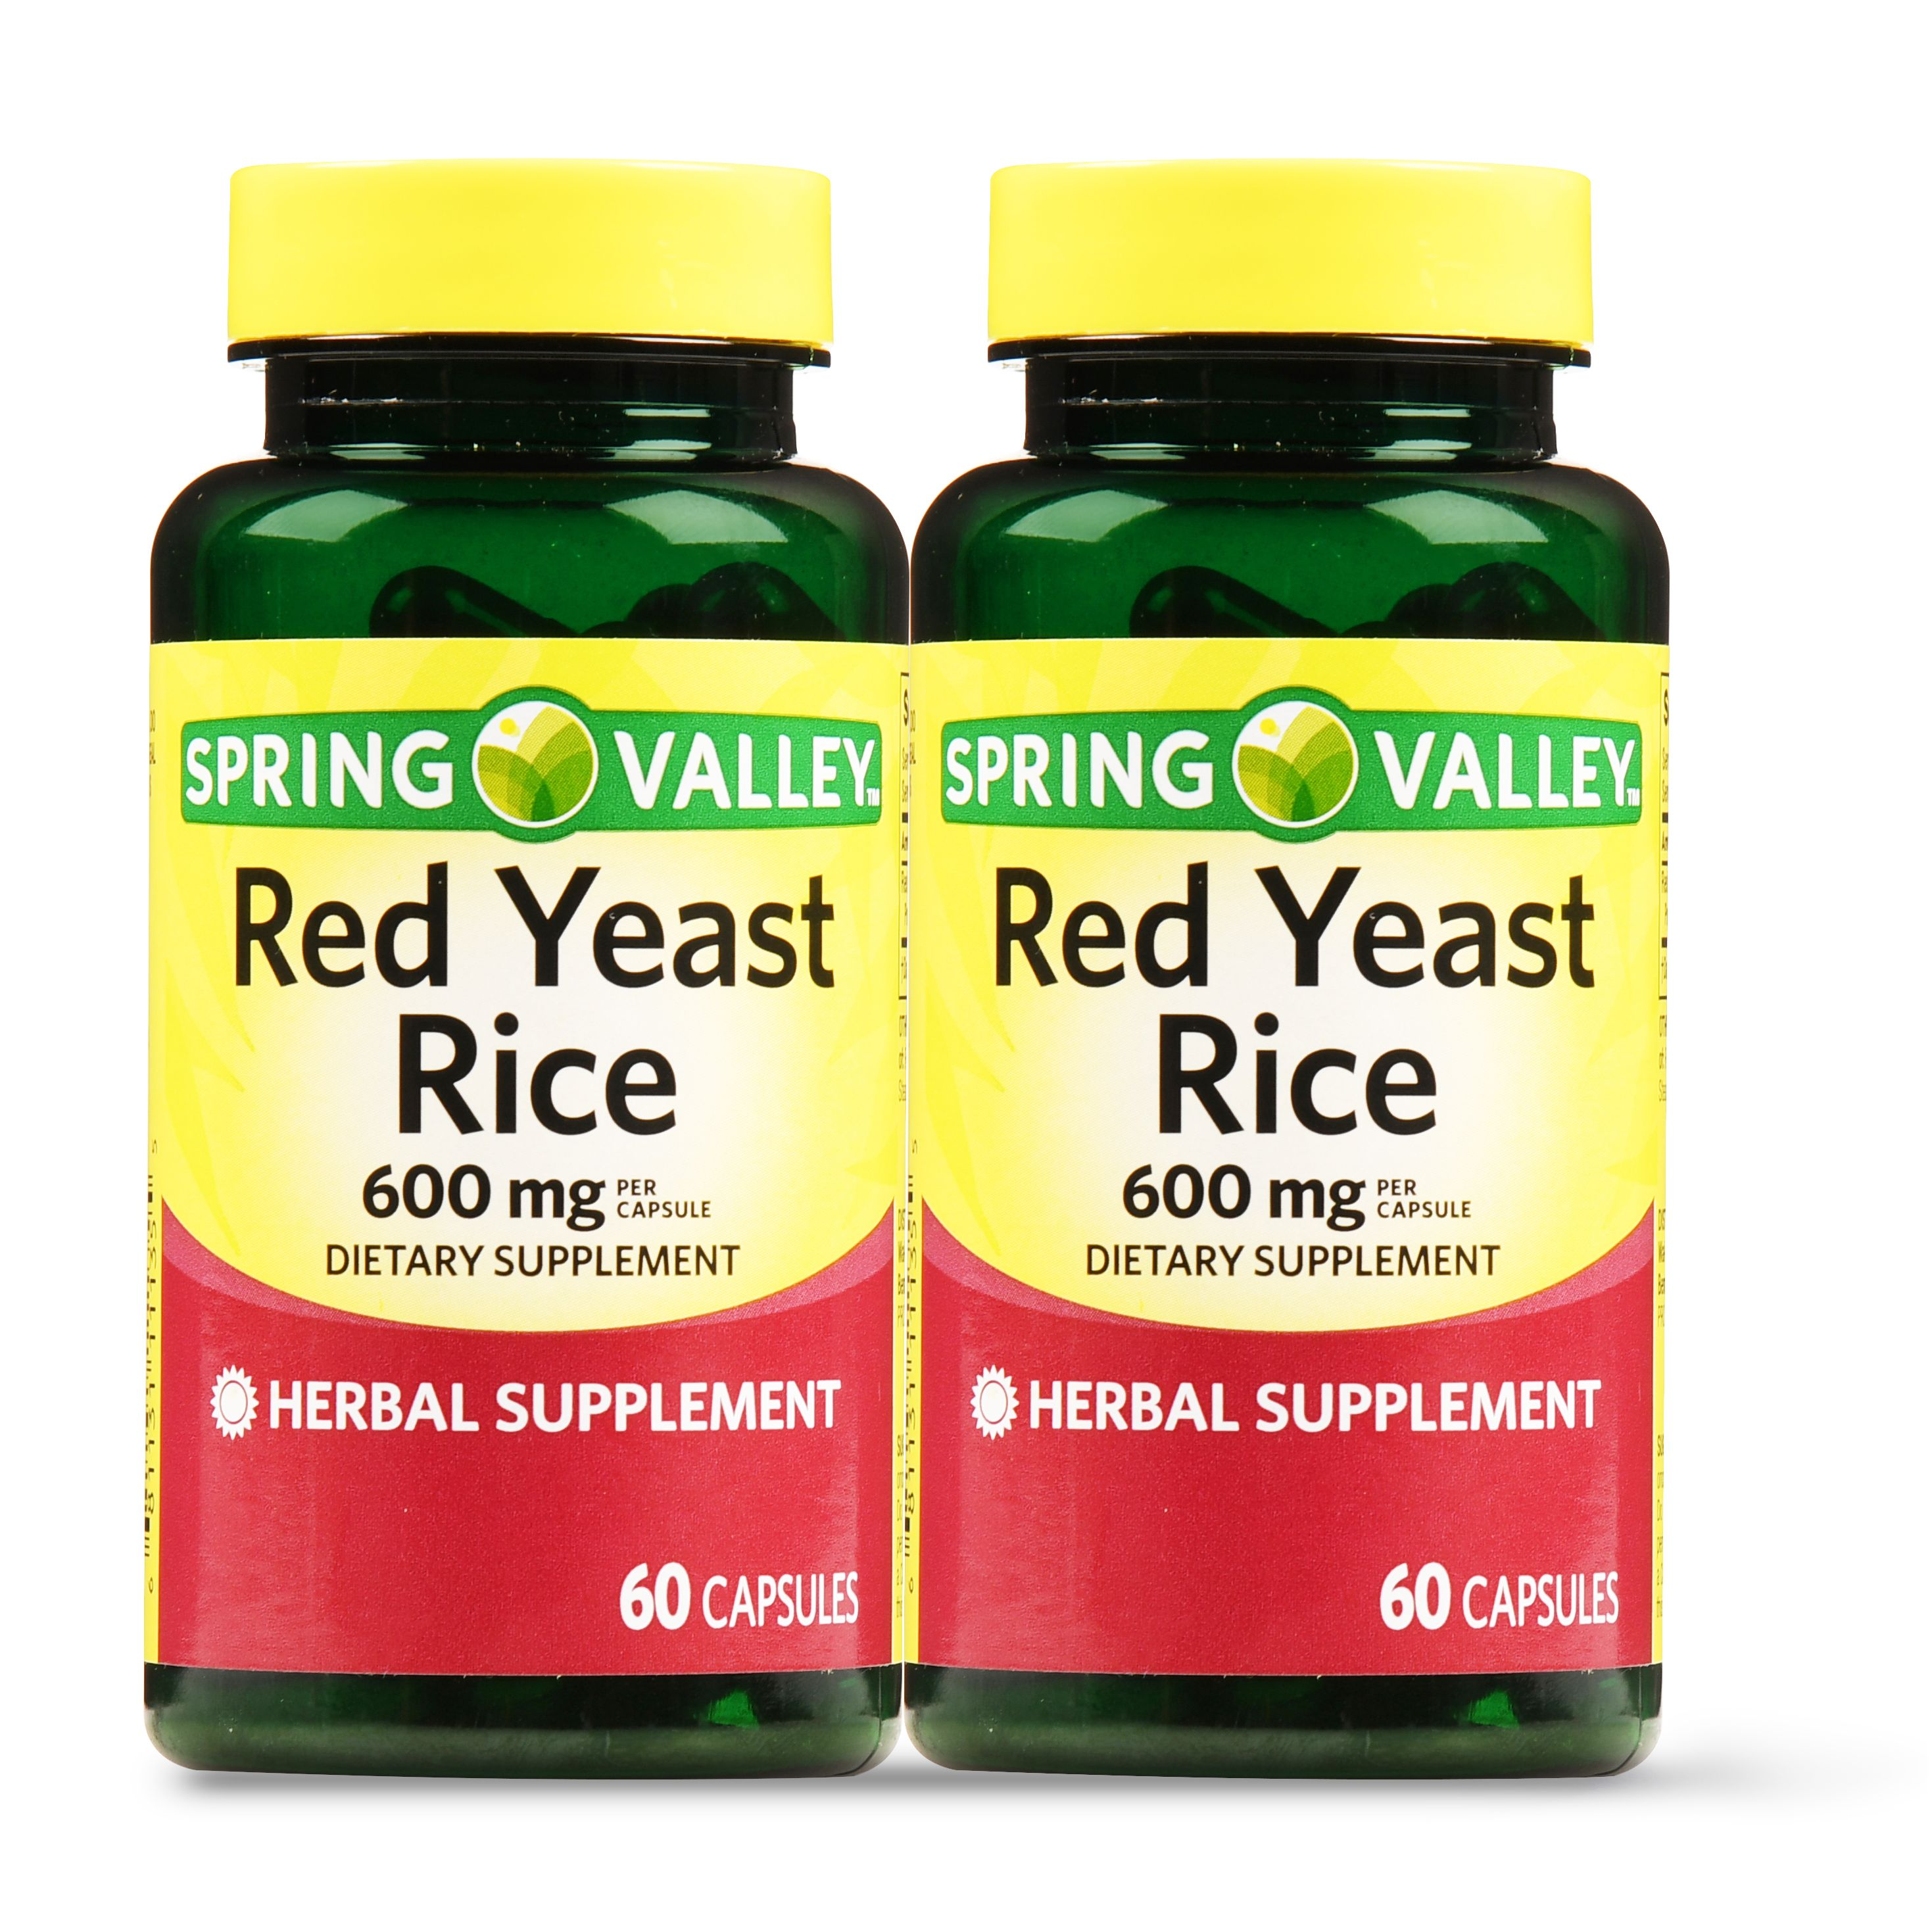 Spring Valley Red Yeast Rice Capsules, 600 mg, 60 Ct, 2 Pk